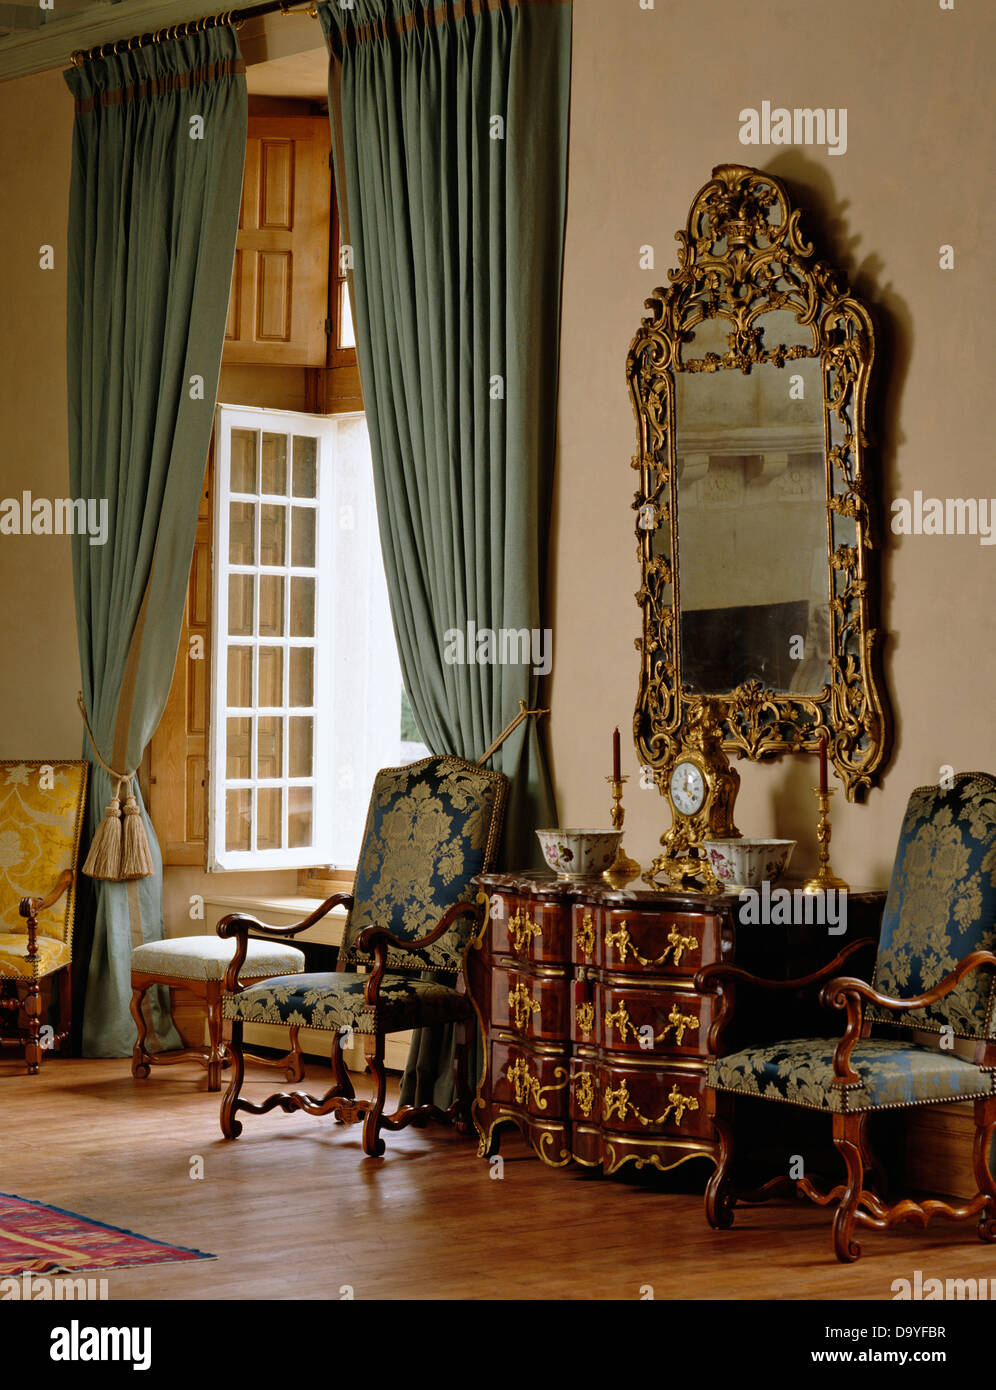 Ornate gilt-framed antique mirror above antique chest-of-drawers and ...